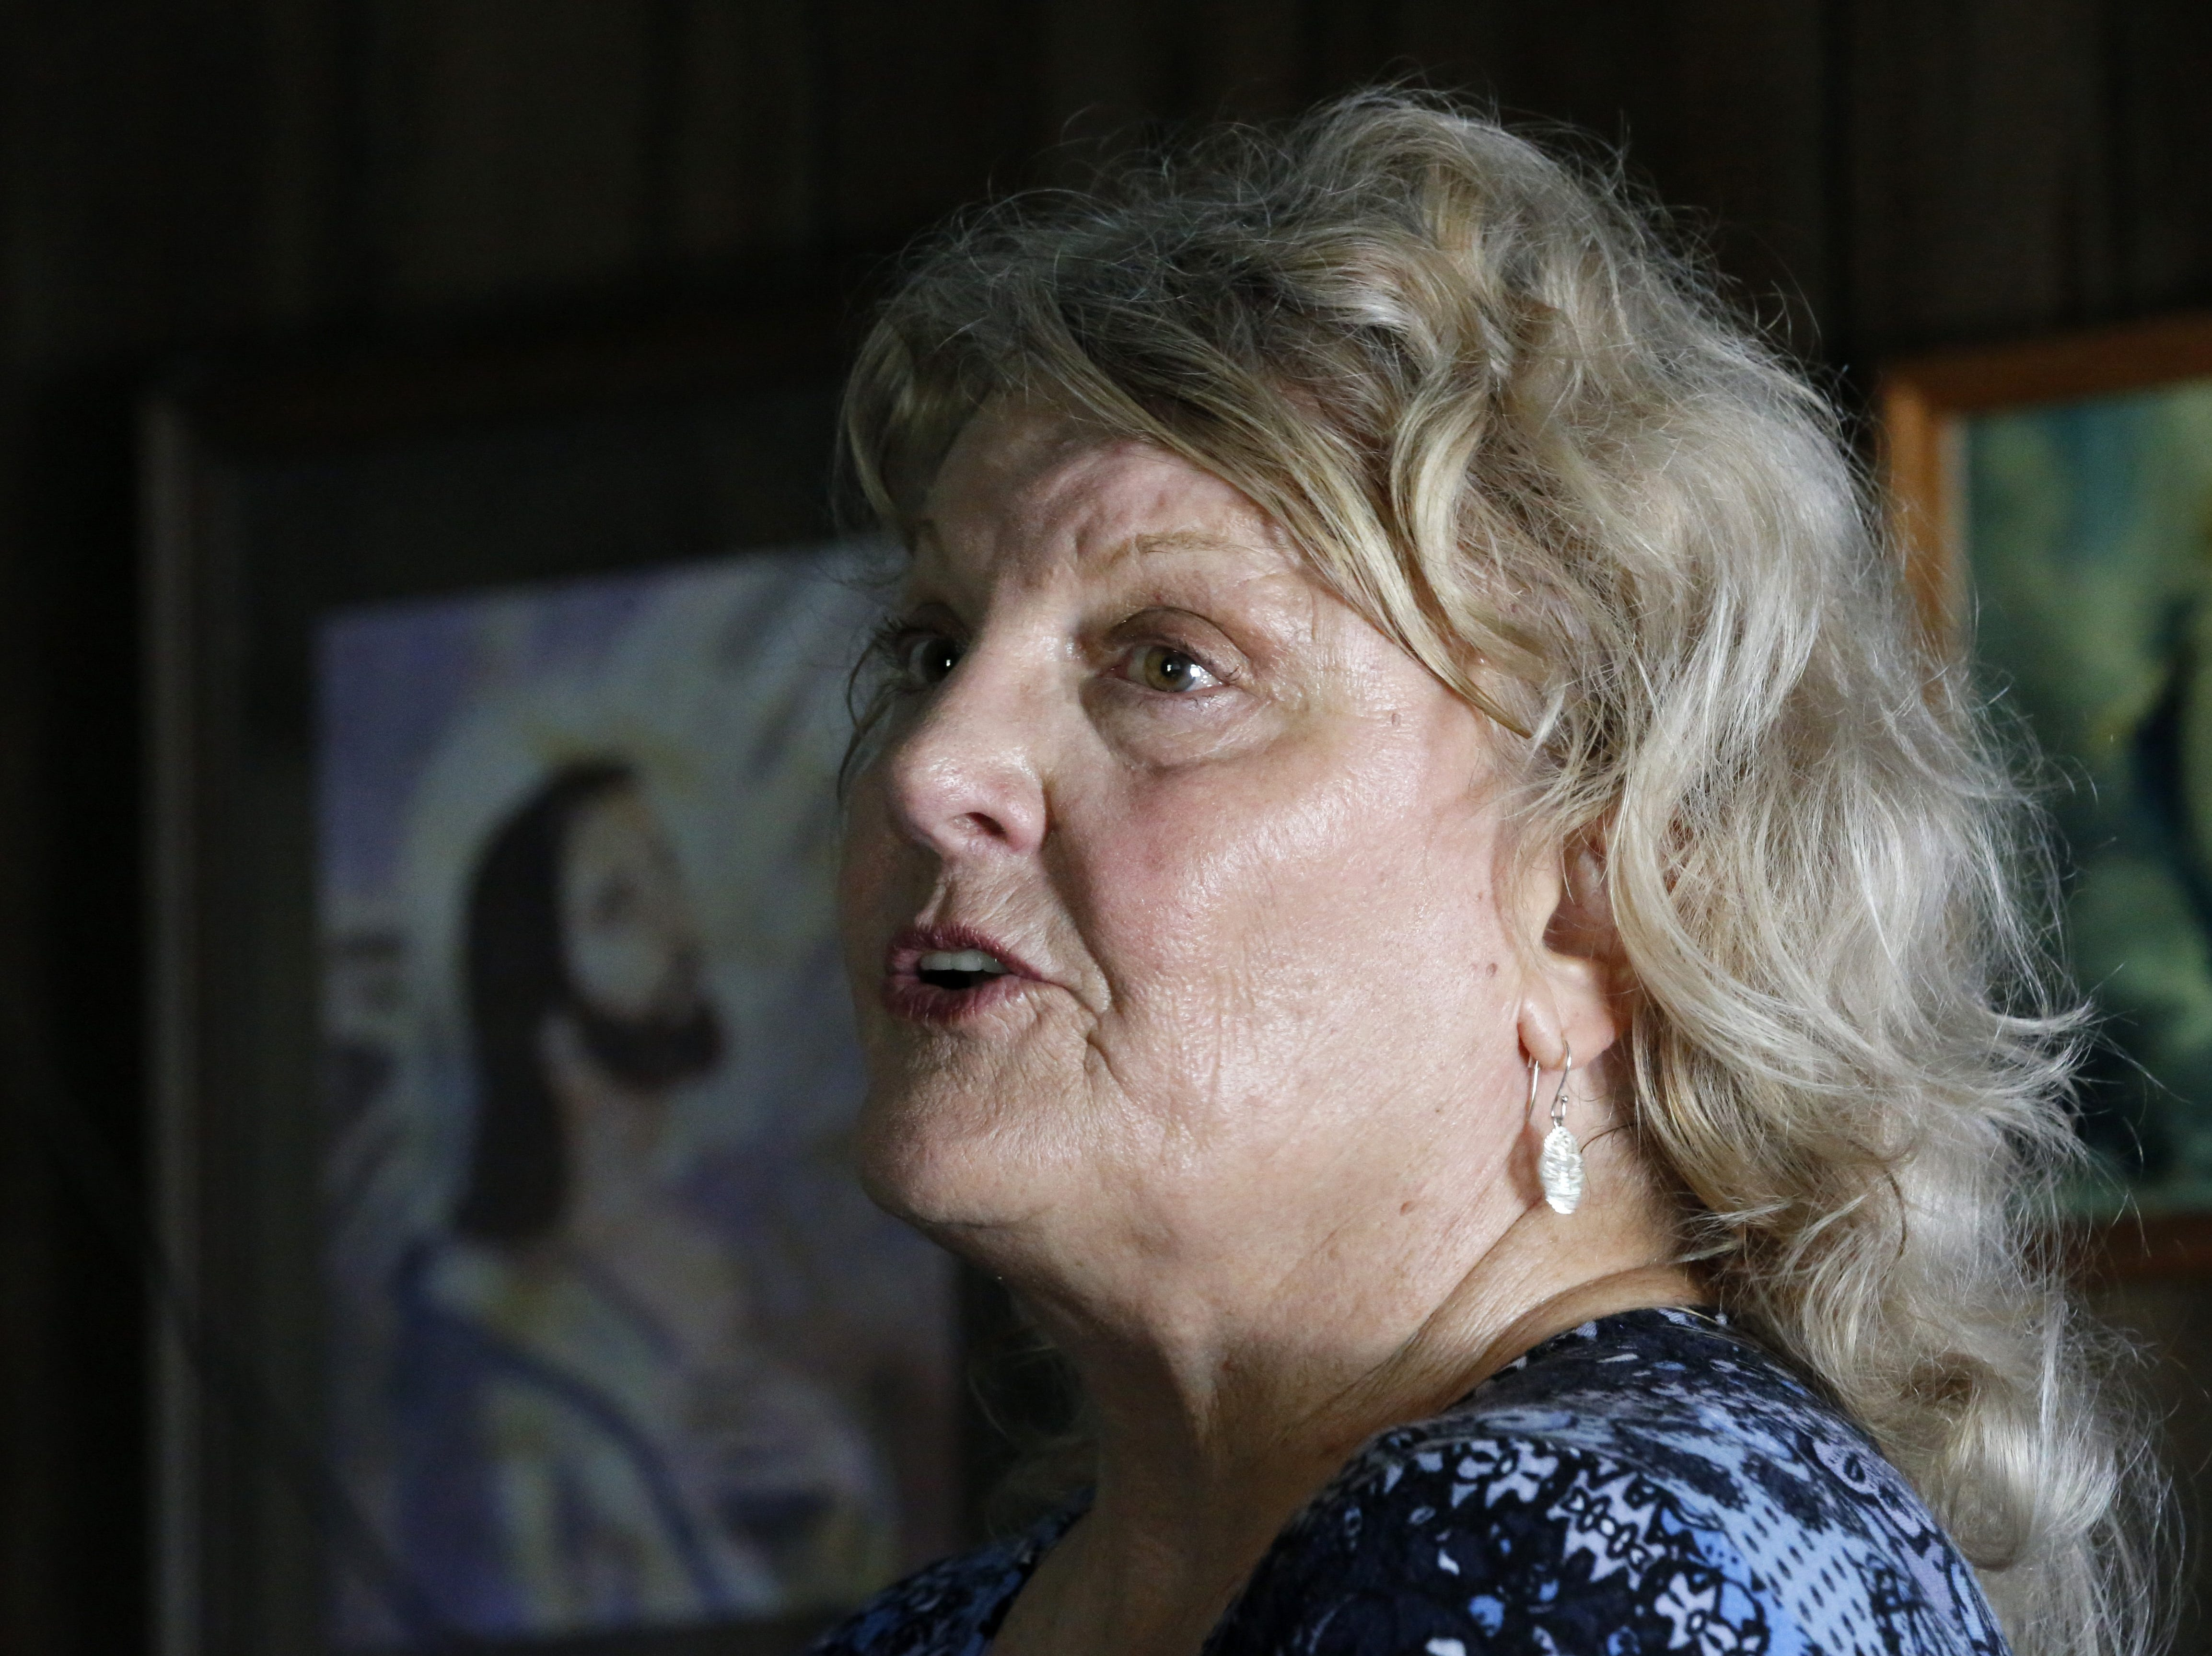 Pat Hymel tells the history of Our Lady of Blind River Chapel, inside the chapel along Blind River in St. James Parish, La., Tuesday, April 9, 2019. The chapel was built decades ago by Martha Deroche and her husband, Bobby, after Martha had a vision of Jesus kneeling by a rock. Over the years, people have stopped by in boats or kayaks to pray in the one-room chapel. But floods over the years have damaged the little church, and the couple's grandson Lance Weber had to close it about two years ago out of safety concerns. (AP Photo/Gerald Herbert)